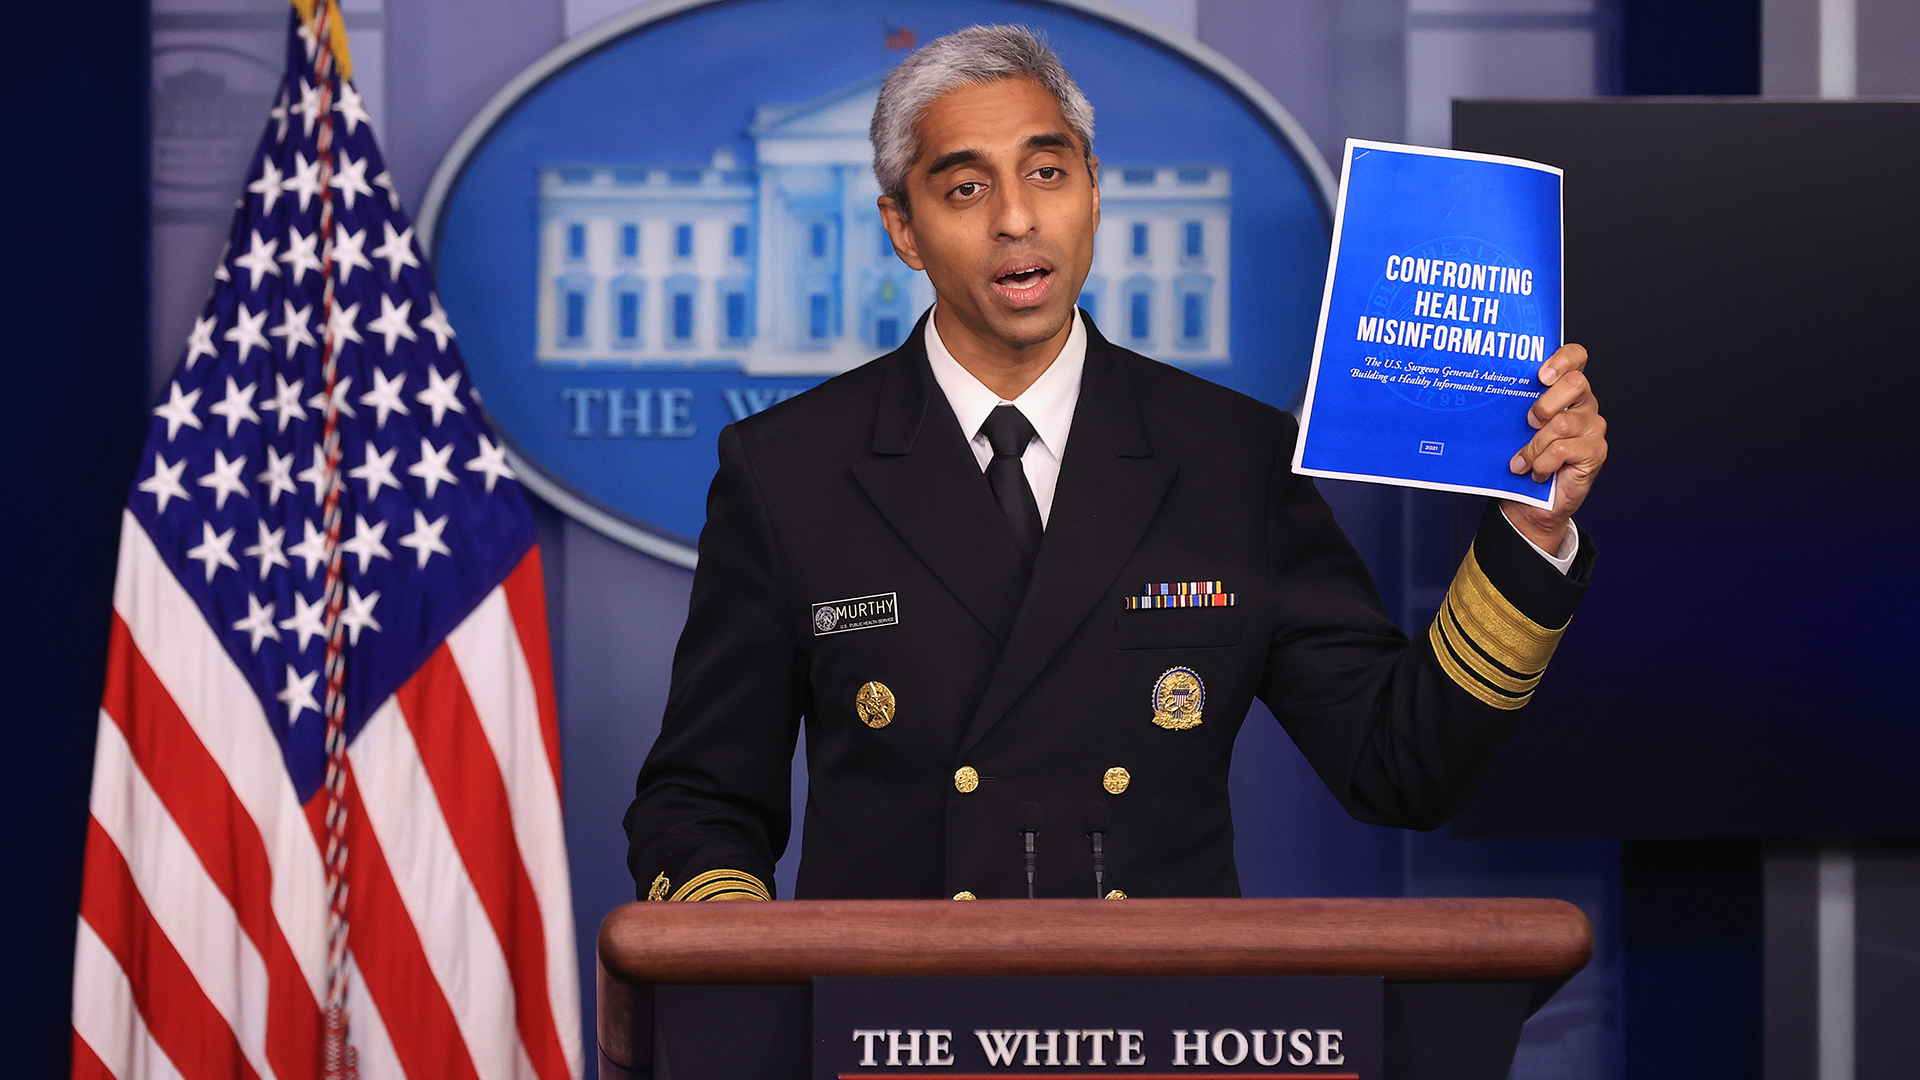 U.S. Surgeon General Vivek Murthy talks to reporters during the daily news conference in the Brady Press Briefing Room at the White House on July 15, 2021 in Washington, DC. Murthy announced the publication of a Surgeon's General's advisory titled, 'Confronting Health Misinformation,' and called on social media companies to do more to combat false information about the coronavirus vaccine and other health care topics. (Photo by Chip Somodevilla/Getty Images)